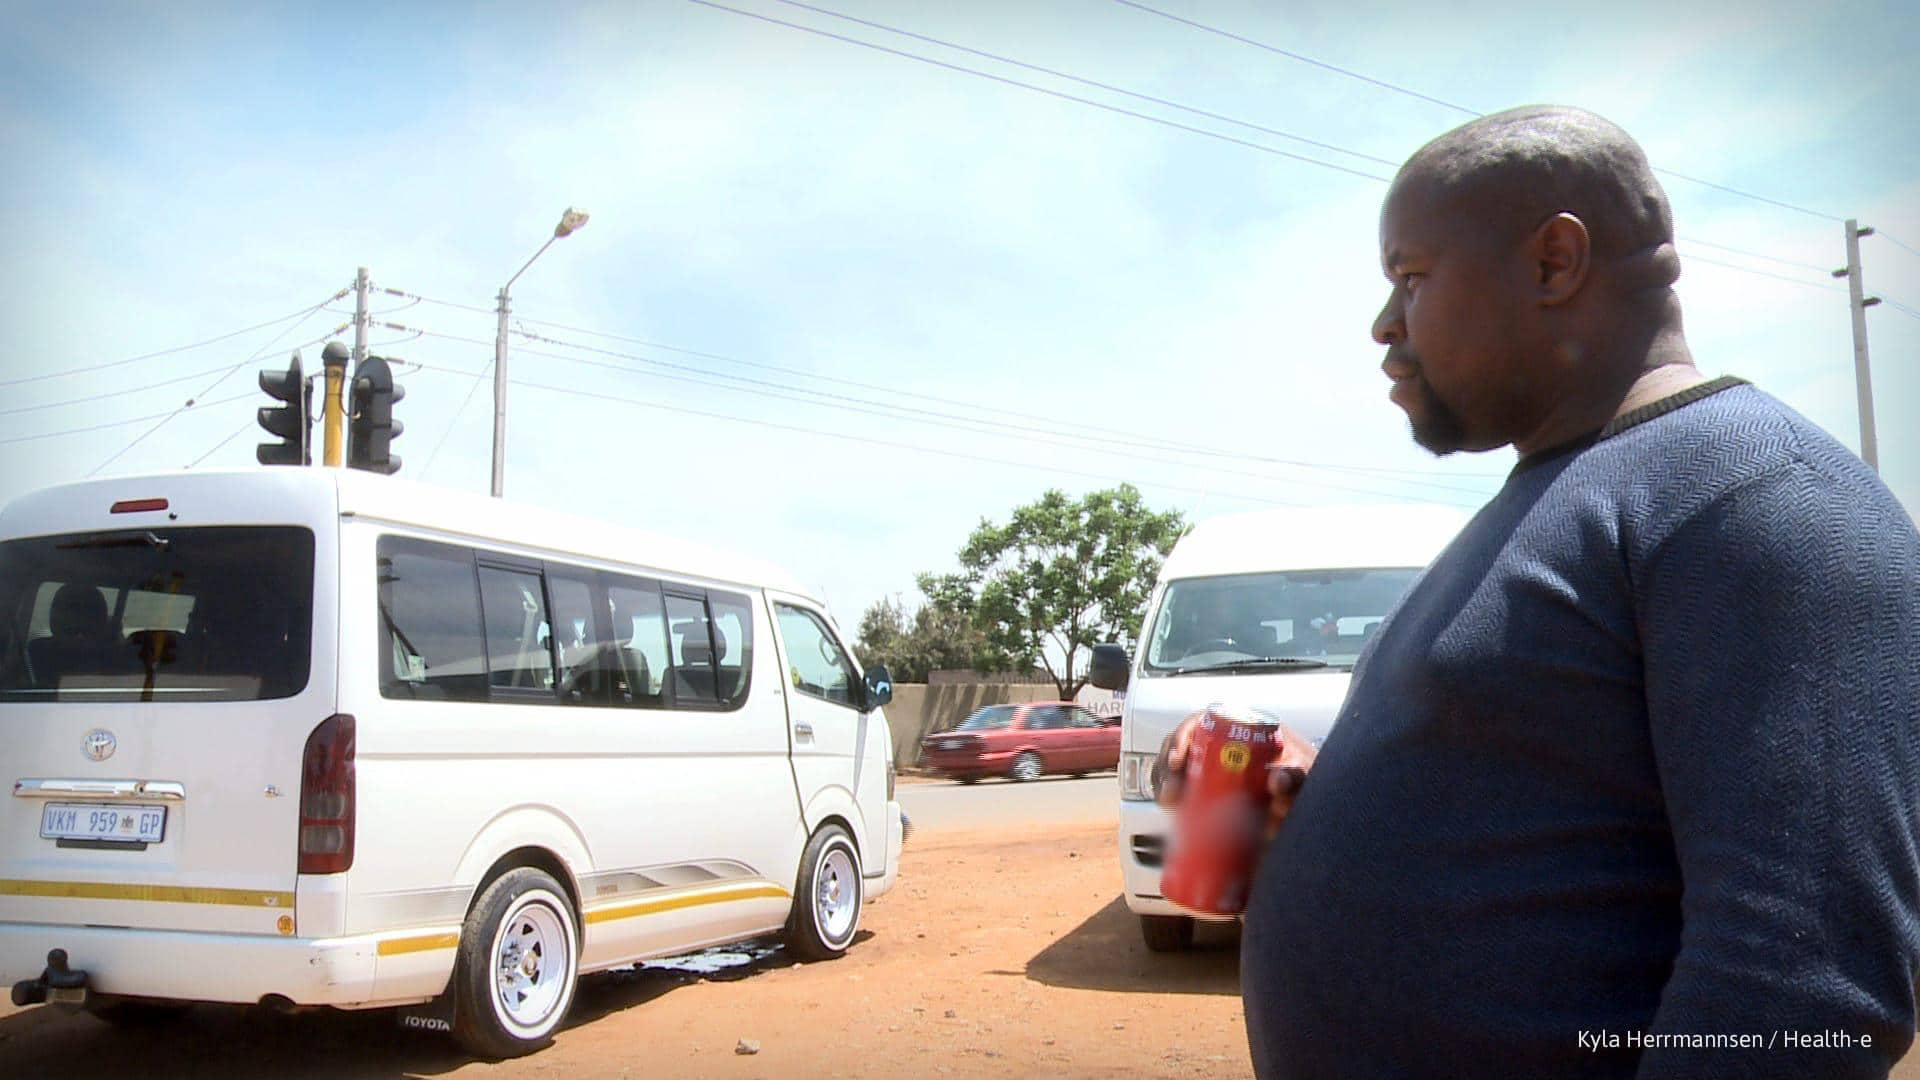 Video: Sugary drinks fuel taxi drivers | Health-e thumbnail